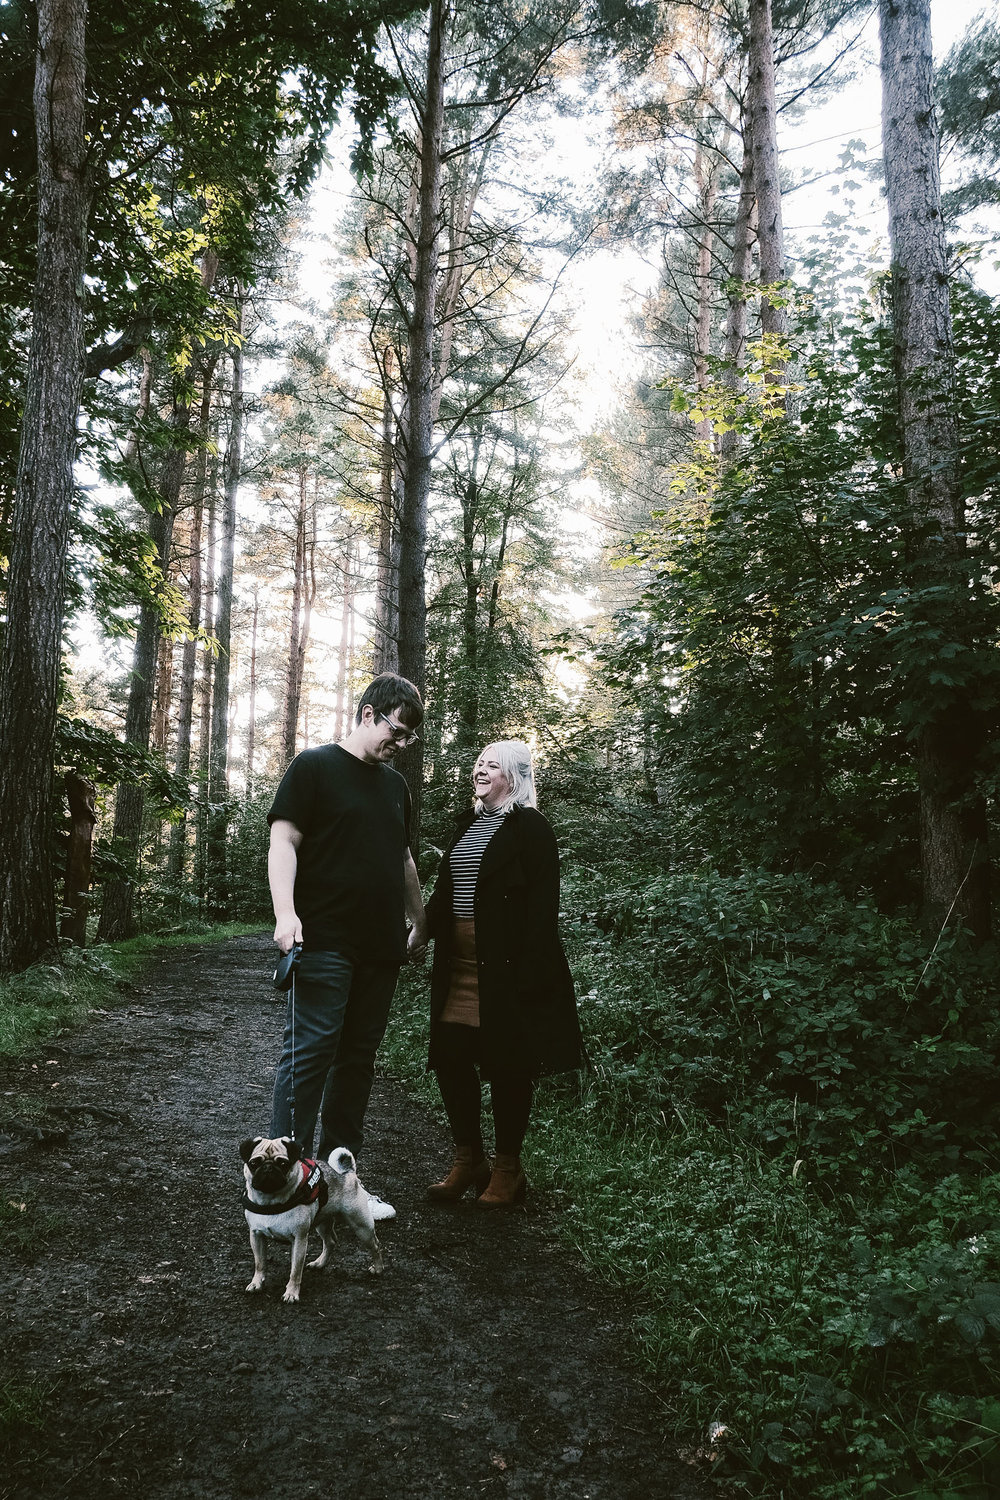 Couple with dog laughing in forest with sun breaking through trees